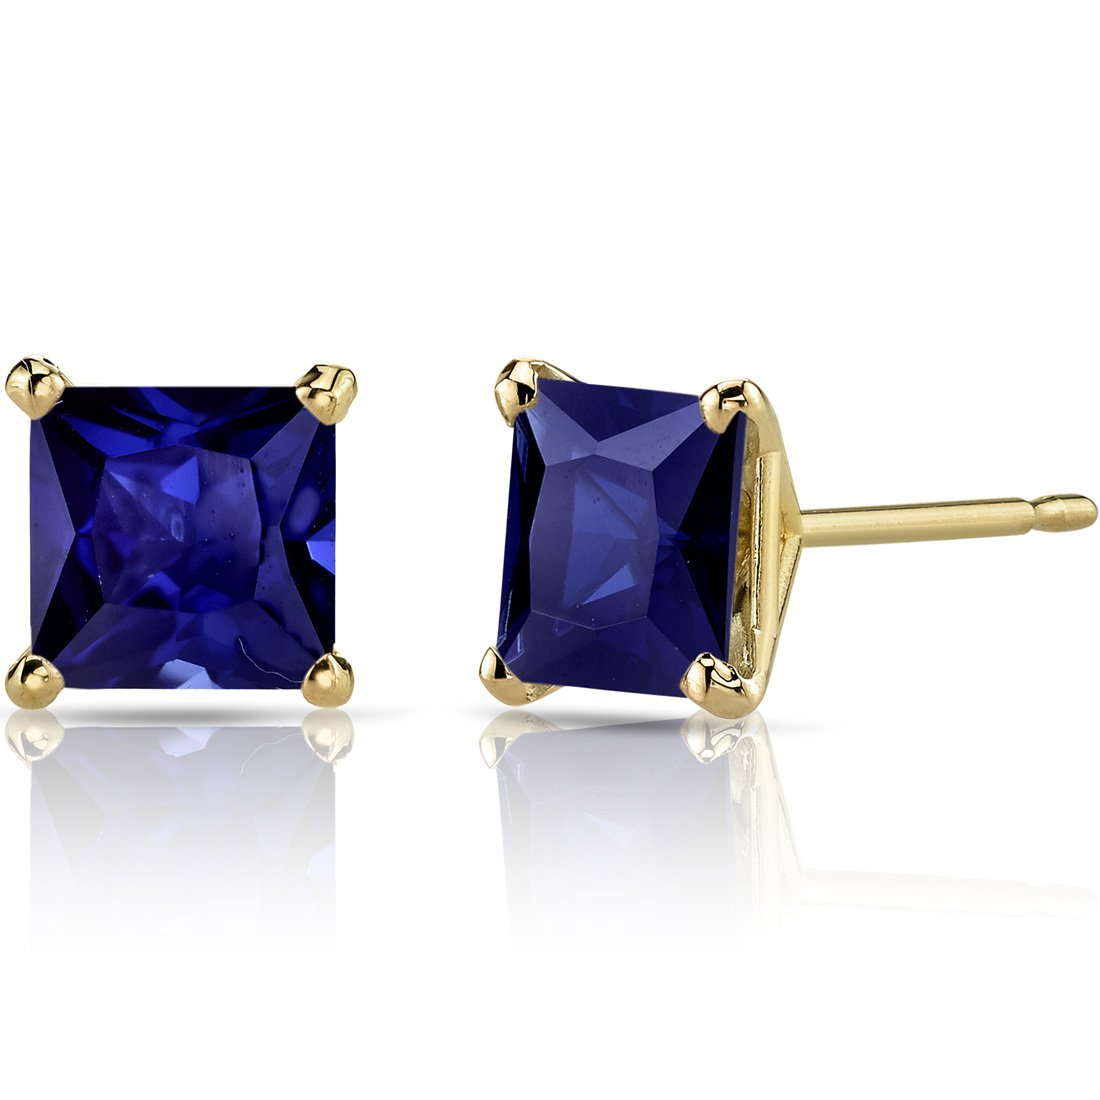 14K 14ct Yellow Gold 2 Ct Lab Blue Sapphire Stud Earrings Princess Cut 6 x 6 mm